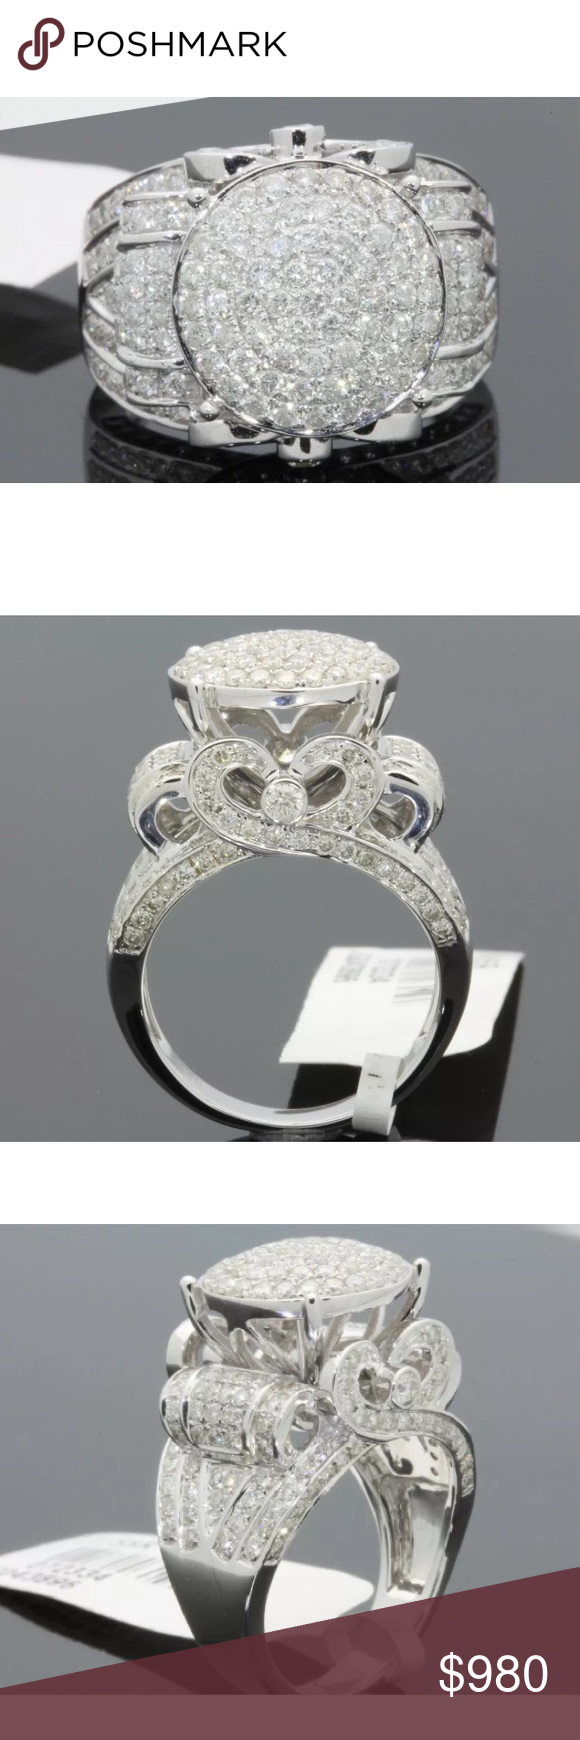 Amazing 2 5 Carat 10k White Gold Diamond Ring Amazing 2 5 Carat 10k White Gold Diamond Rin Unique Diamond Rings Stunning Diamond Rings White Gold Diamond Rings